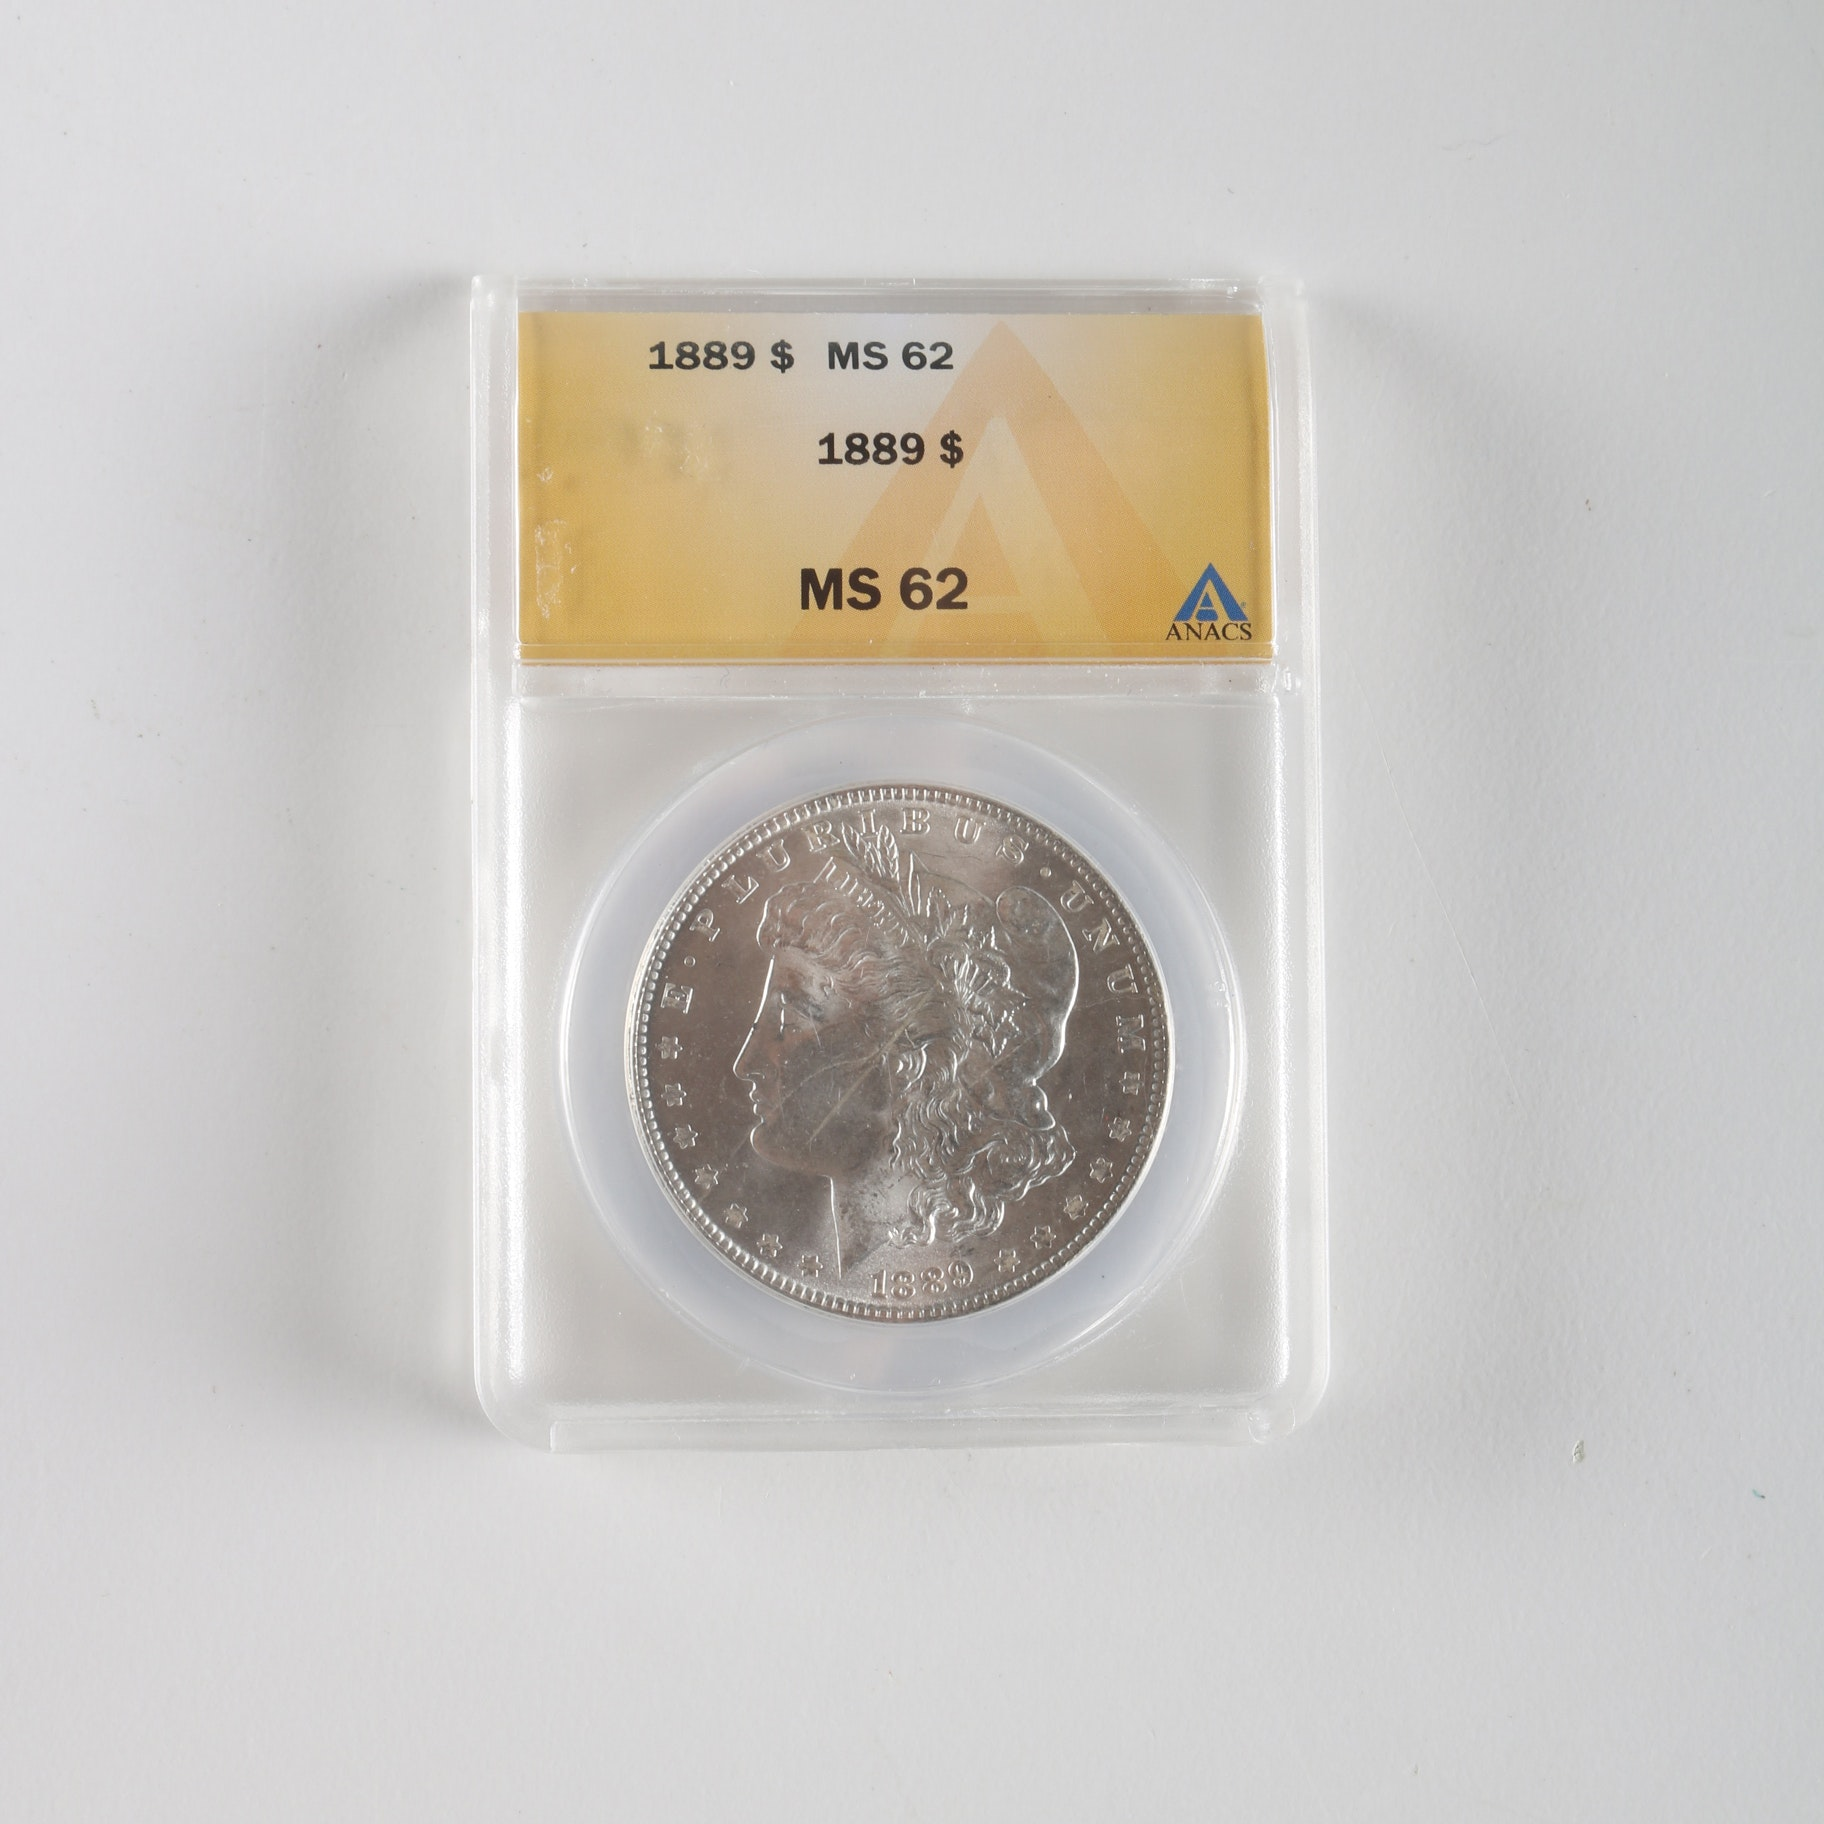 1889 Morgan Dollar in Sealed Graded Case